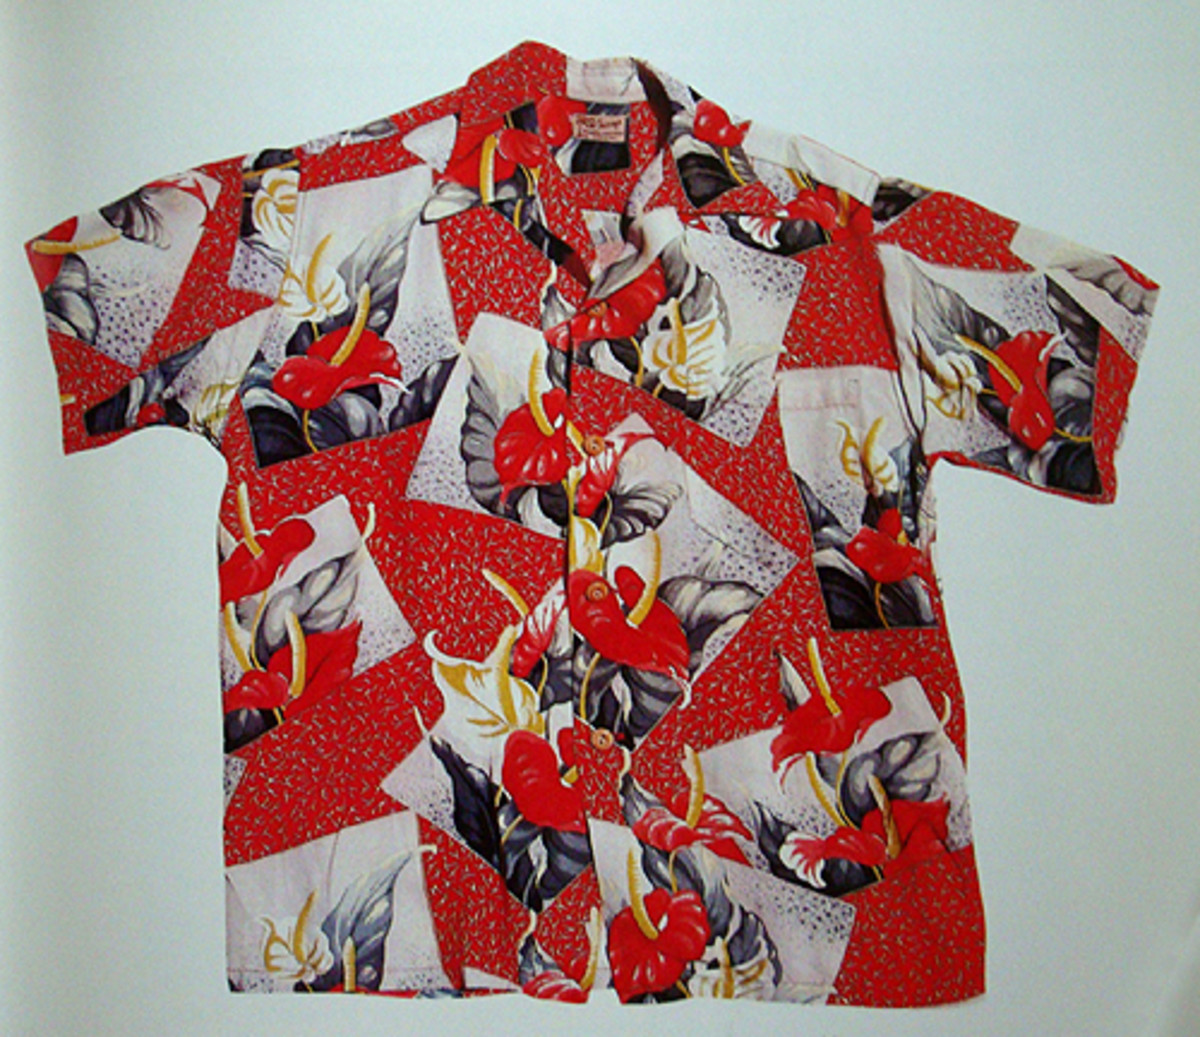 near perfect example of vintage shirt: wooden buttons, matched pocket, long collar, and bold pattern on hefty rayon. photo courtesy of Tommy Steele's Hawaiian Shirt Book.